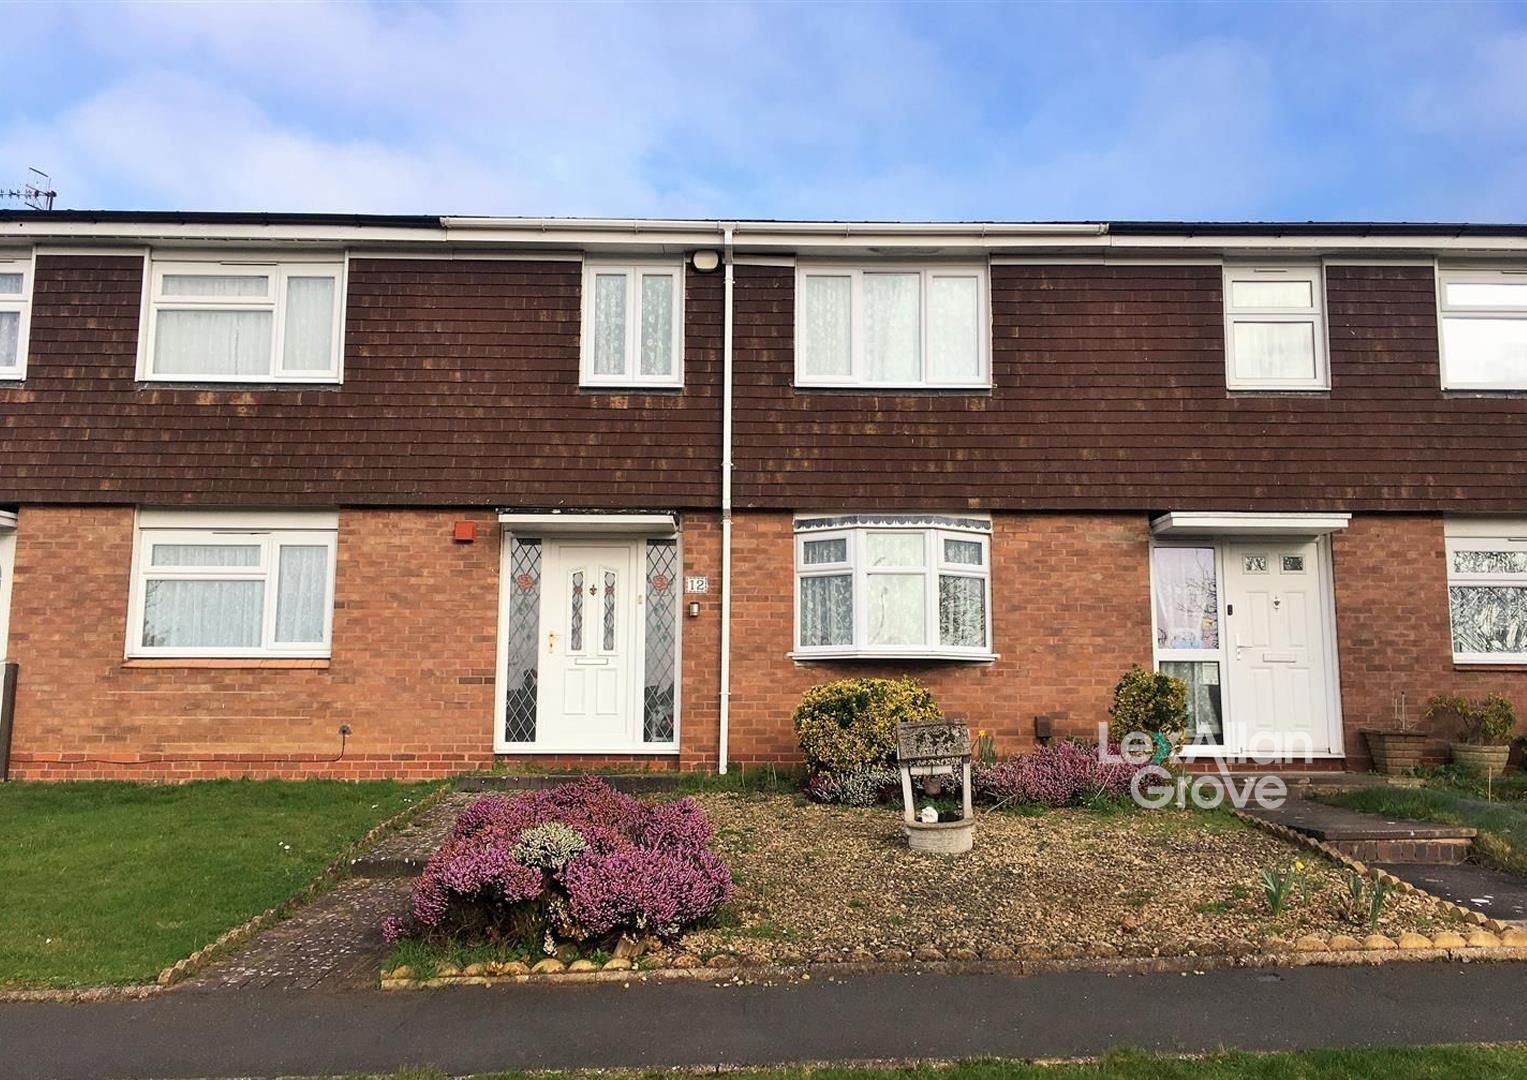 3 bed terraced for sale, B64